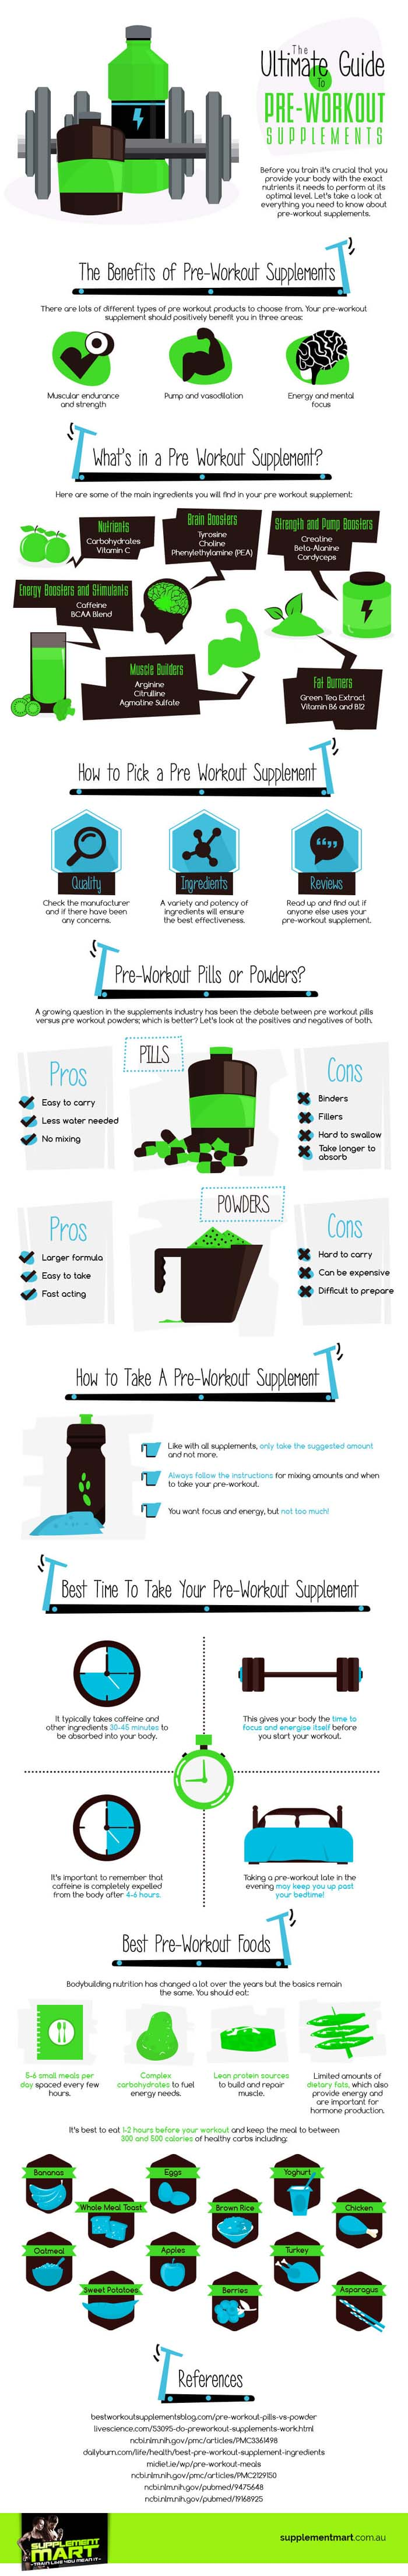 The-Ultimate-Guide-to-Pre-Workout-Supplements2